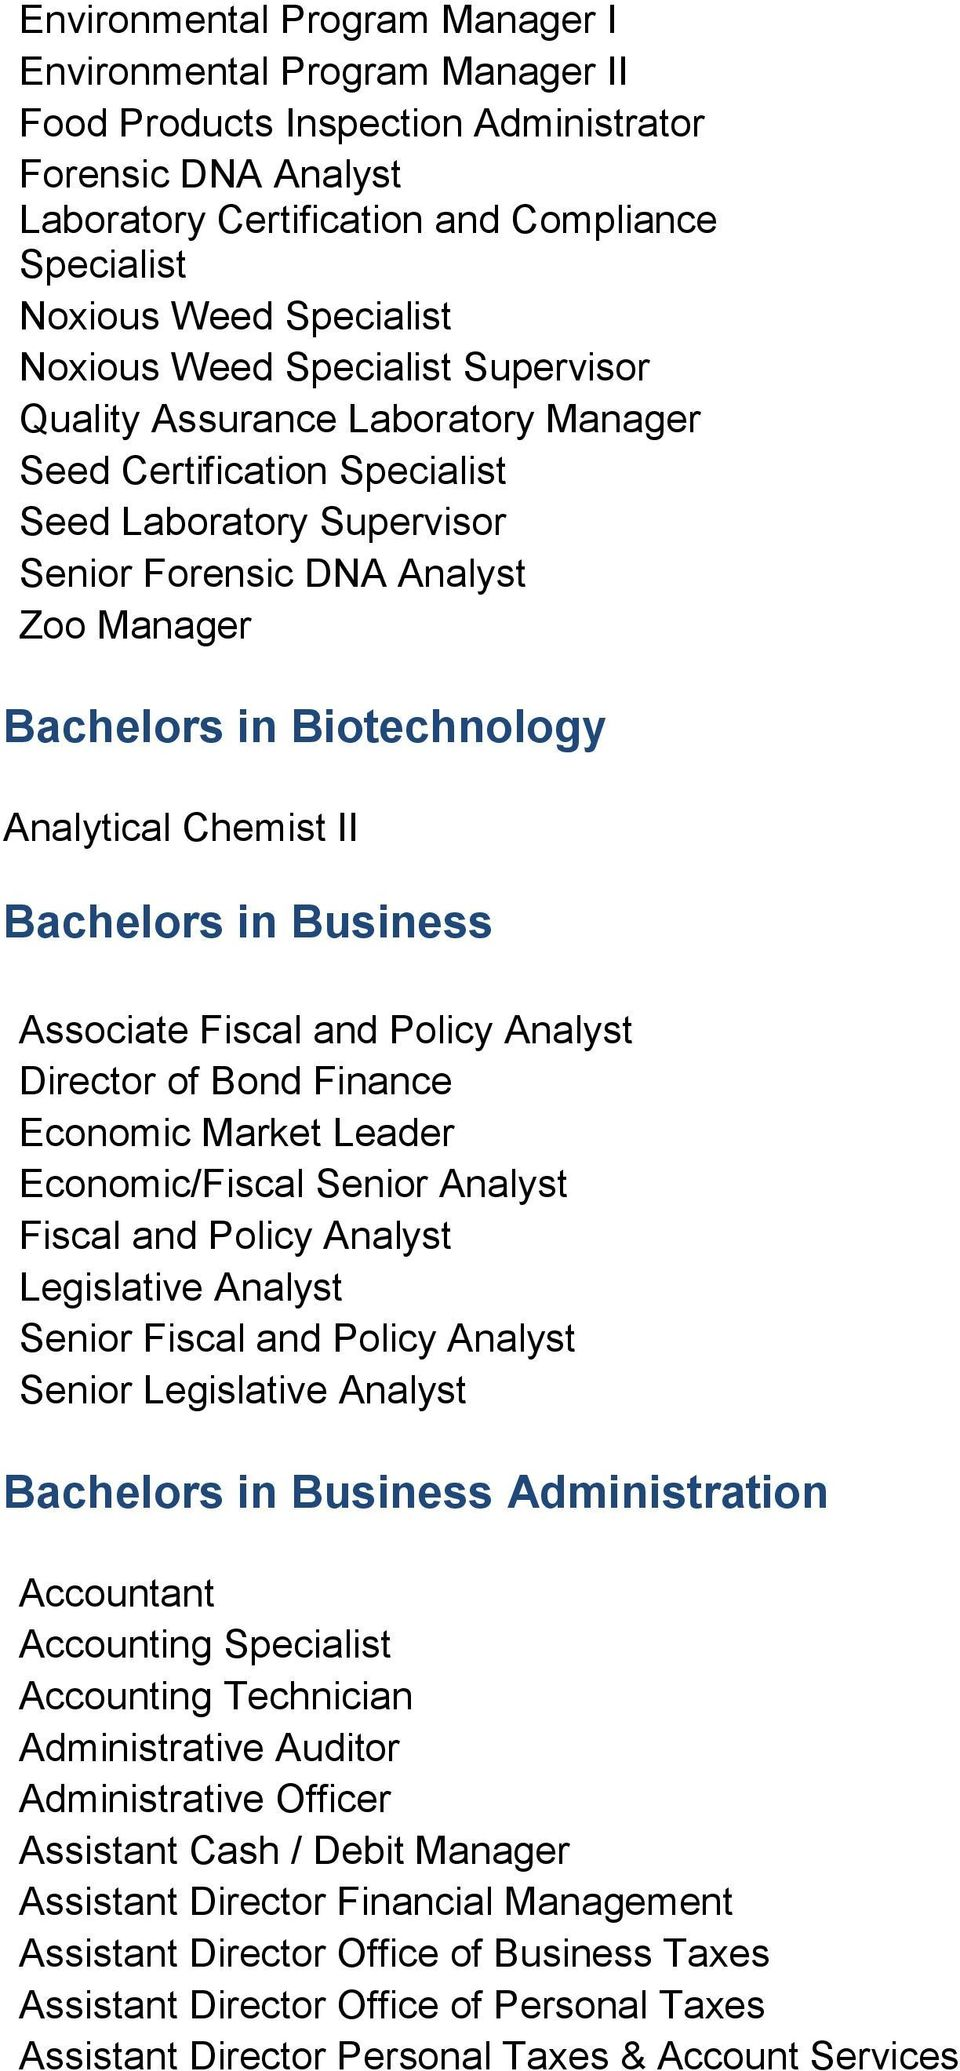 Analytical Chemist II Bachelors in Business Associate Fiscal and Policy Analyst Director of Bond Finance Economic Market Leader Economic/Fiscal Senior Analyst Fiscal and Policy Analyst Legislative